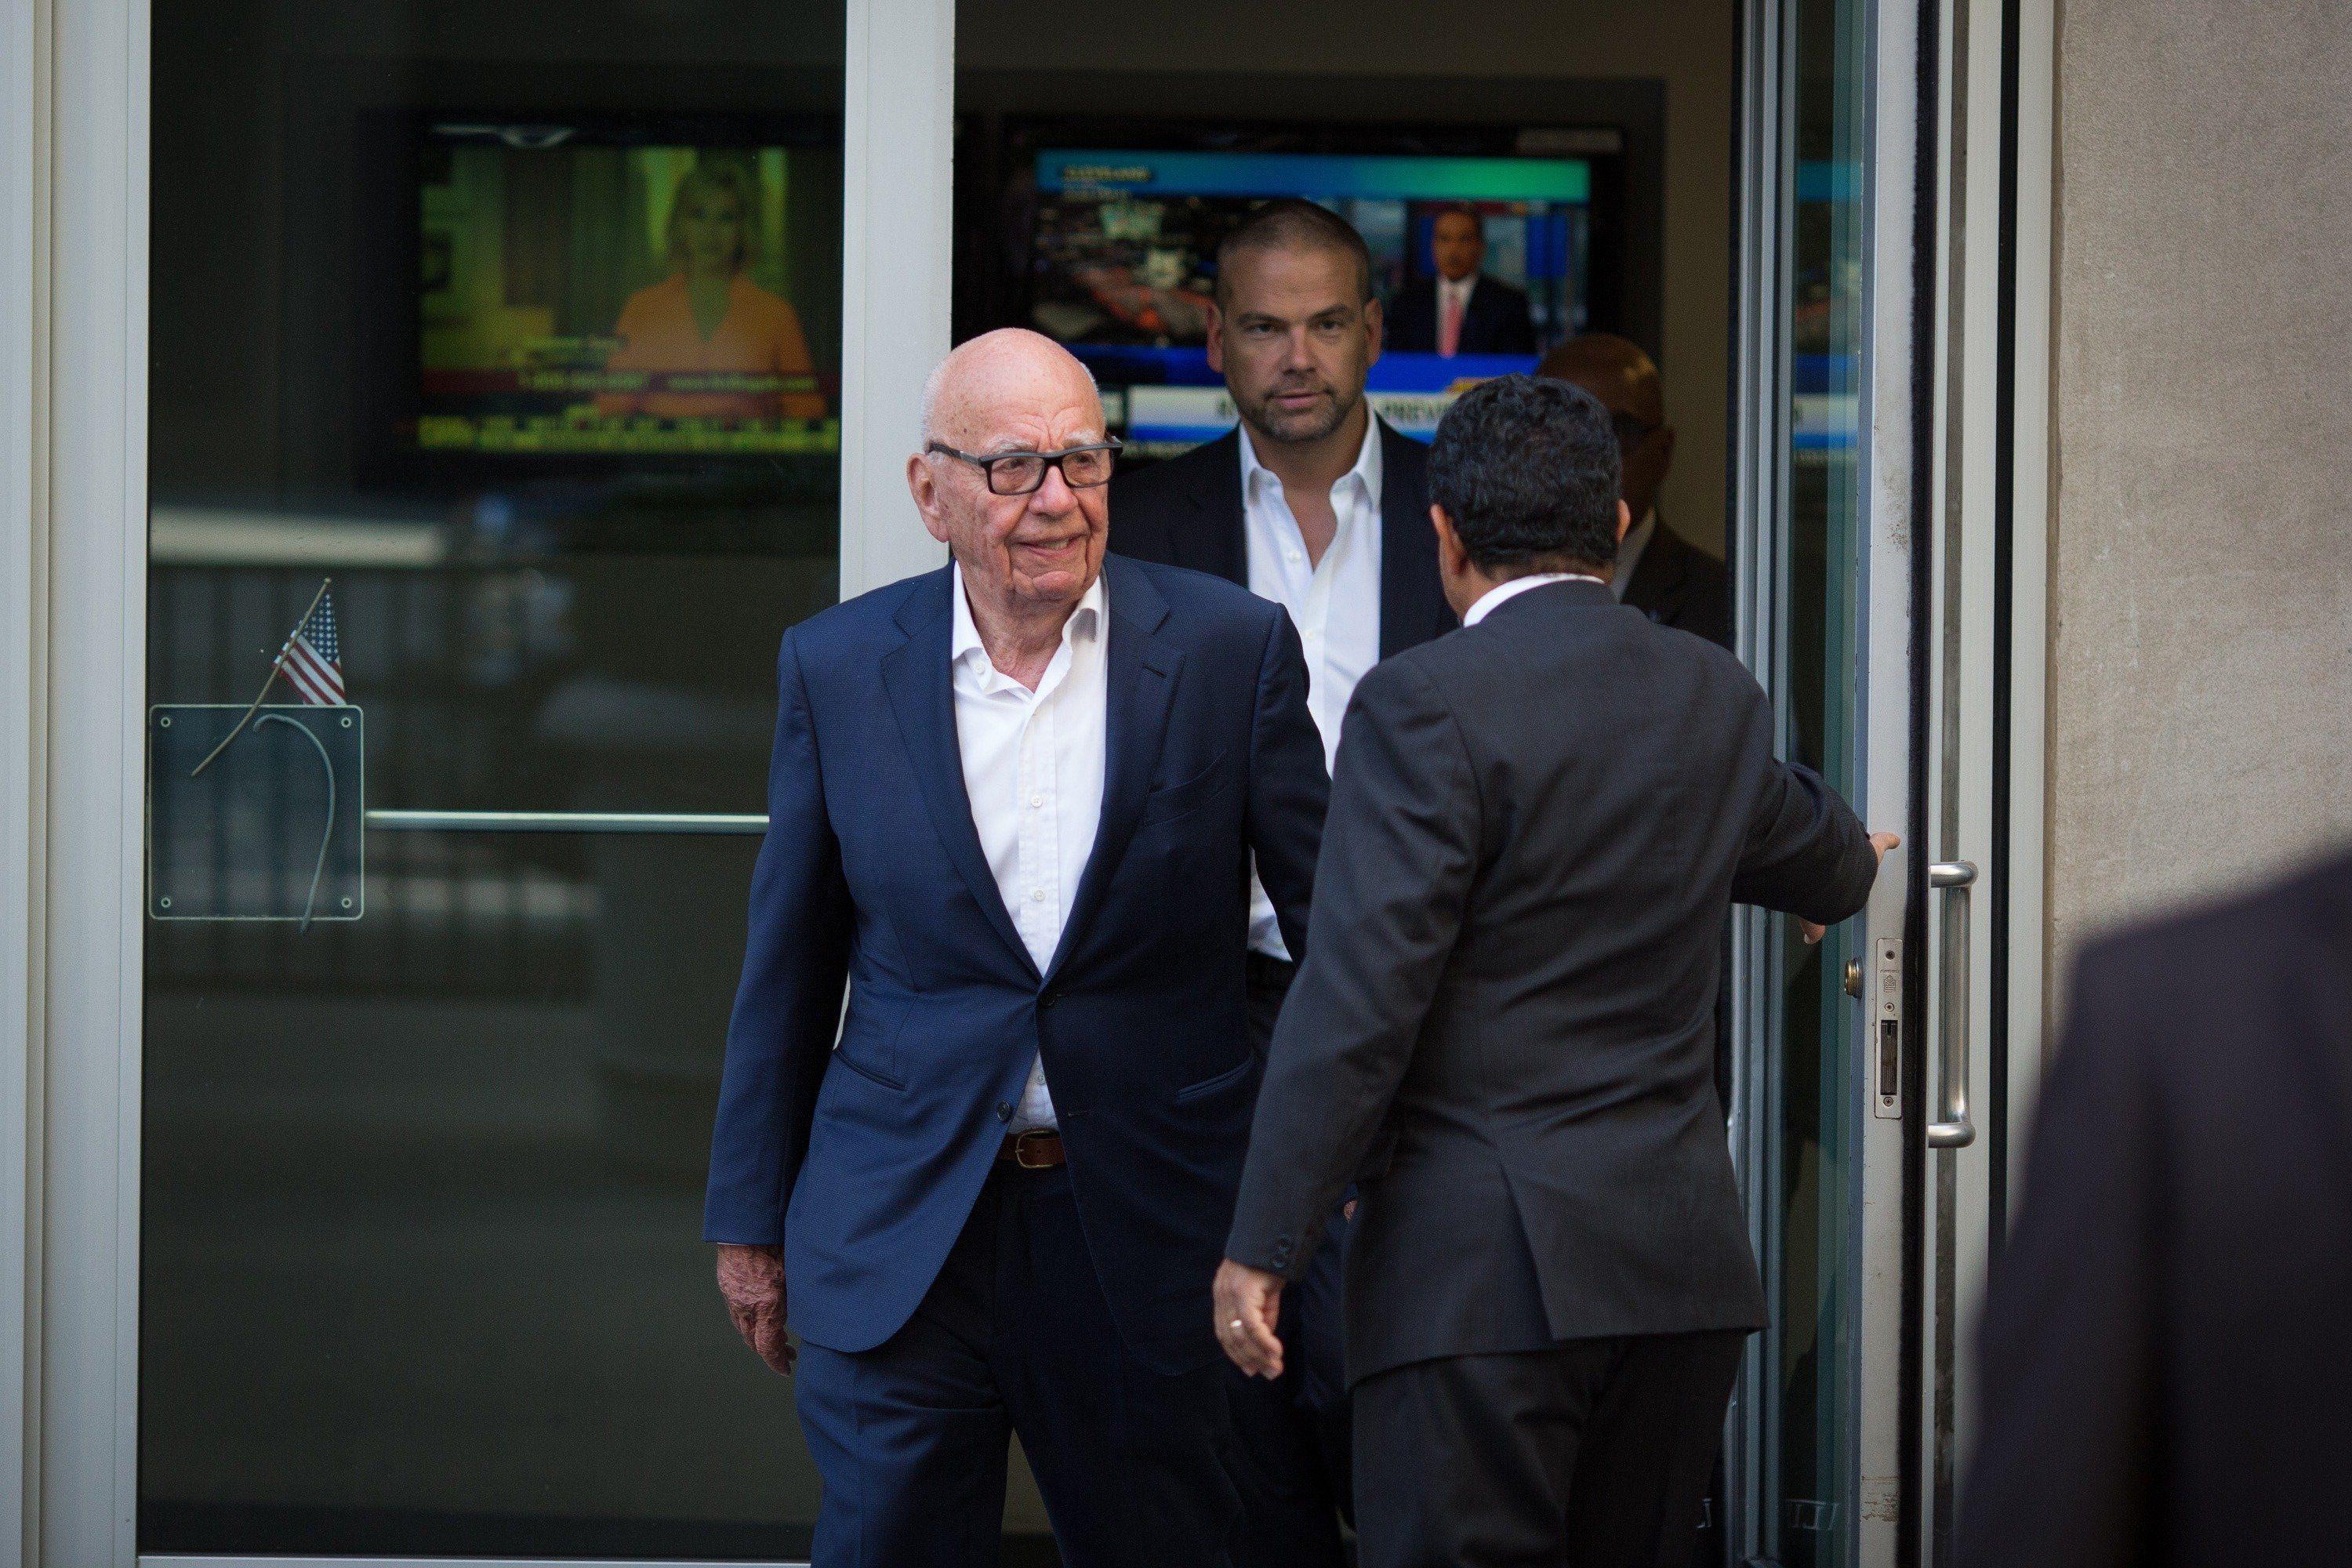 NEW YORK, NY - JULY 21: Rupert Murdoch leaves the News Corporation building with his son Lachlan Murdoch (R) on July 21, 2016 in New York City. Rupert Murdoch is taking over as Chairman and CEO of Fox News Channel after former Chairman and CEO Roger Ailes departed the company today amid sexual harassment charges. (Photo by Kevin Hagen/Getty Images)